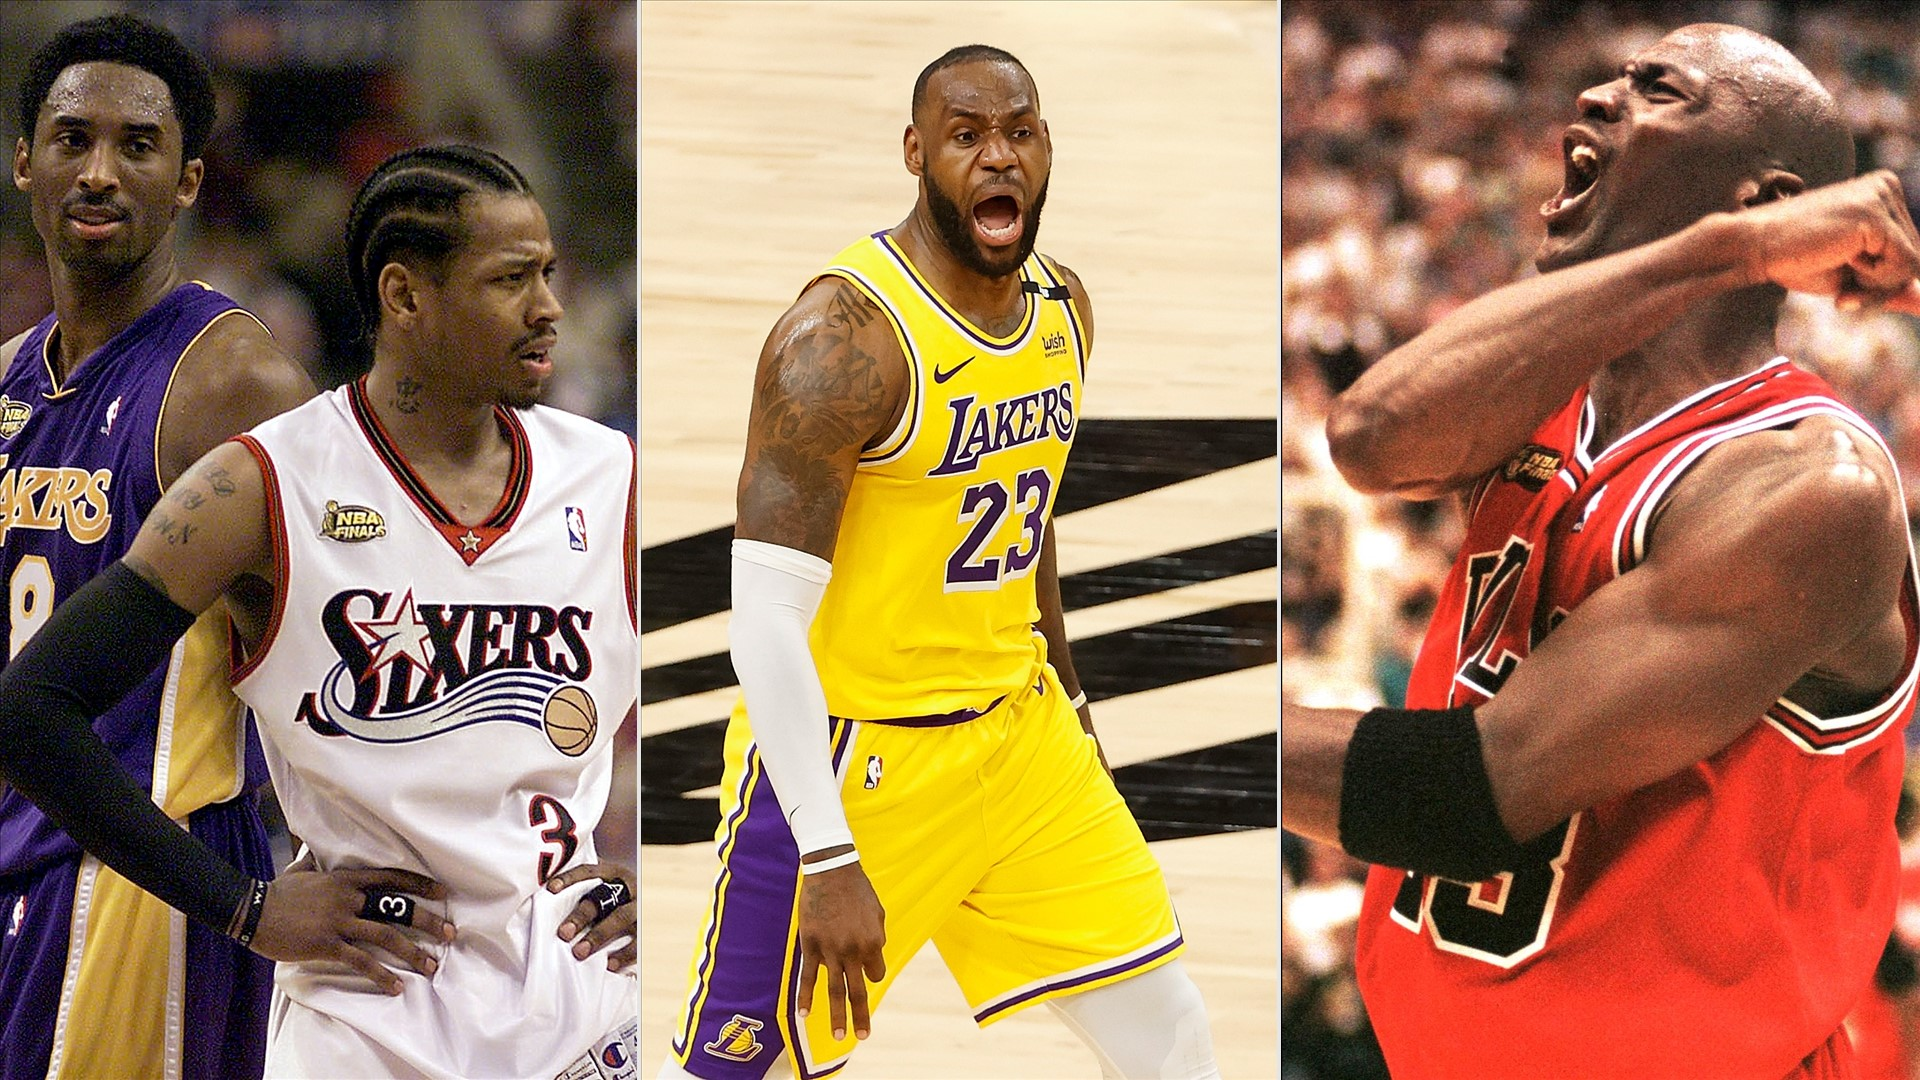 Allen Iverson claims that his NBA Draft class in 1996 was superior to LeBron James' and Michael Jordan's.